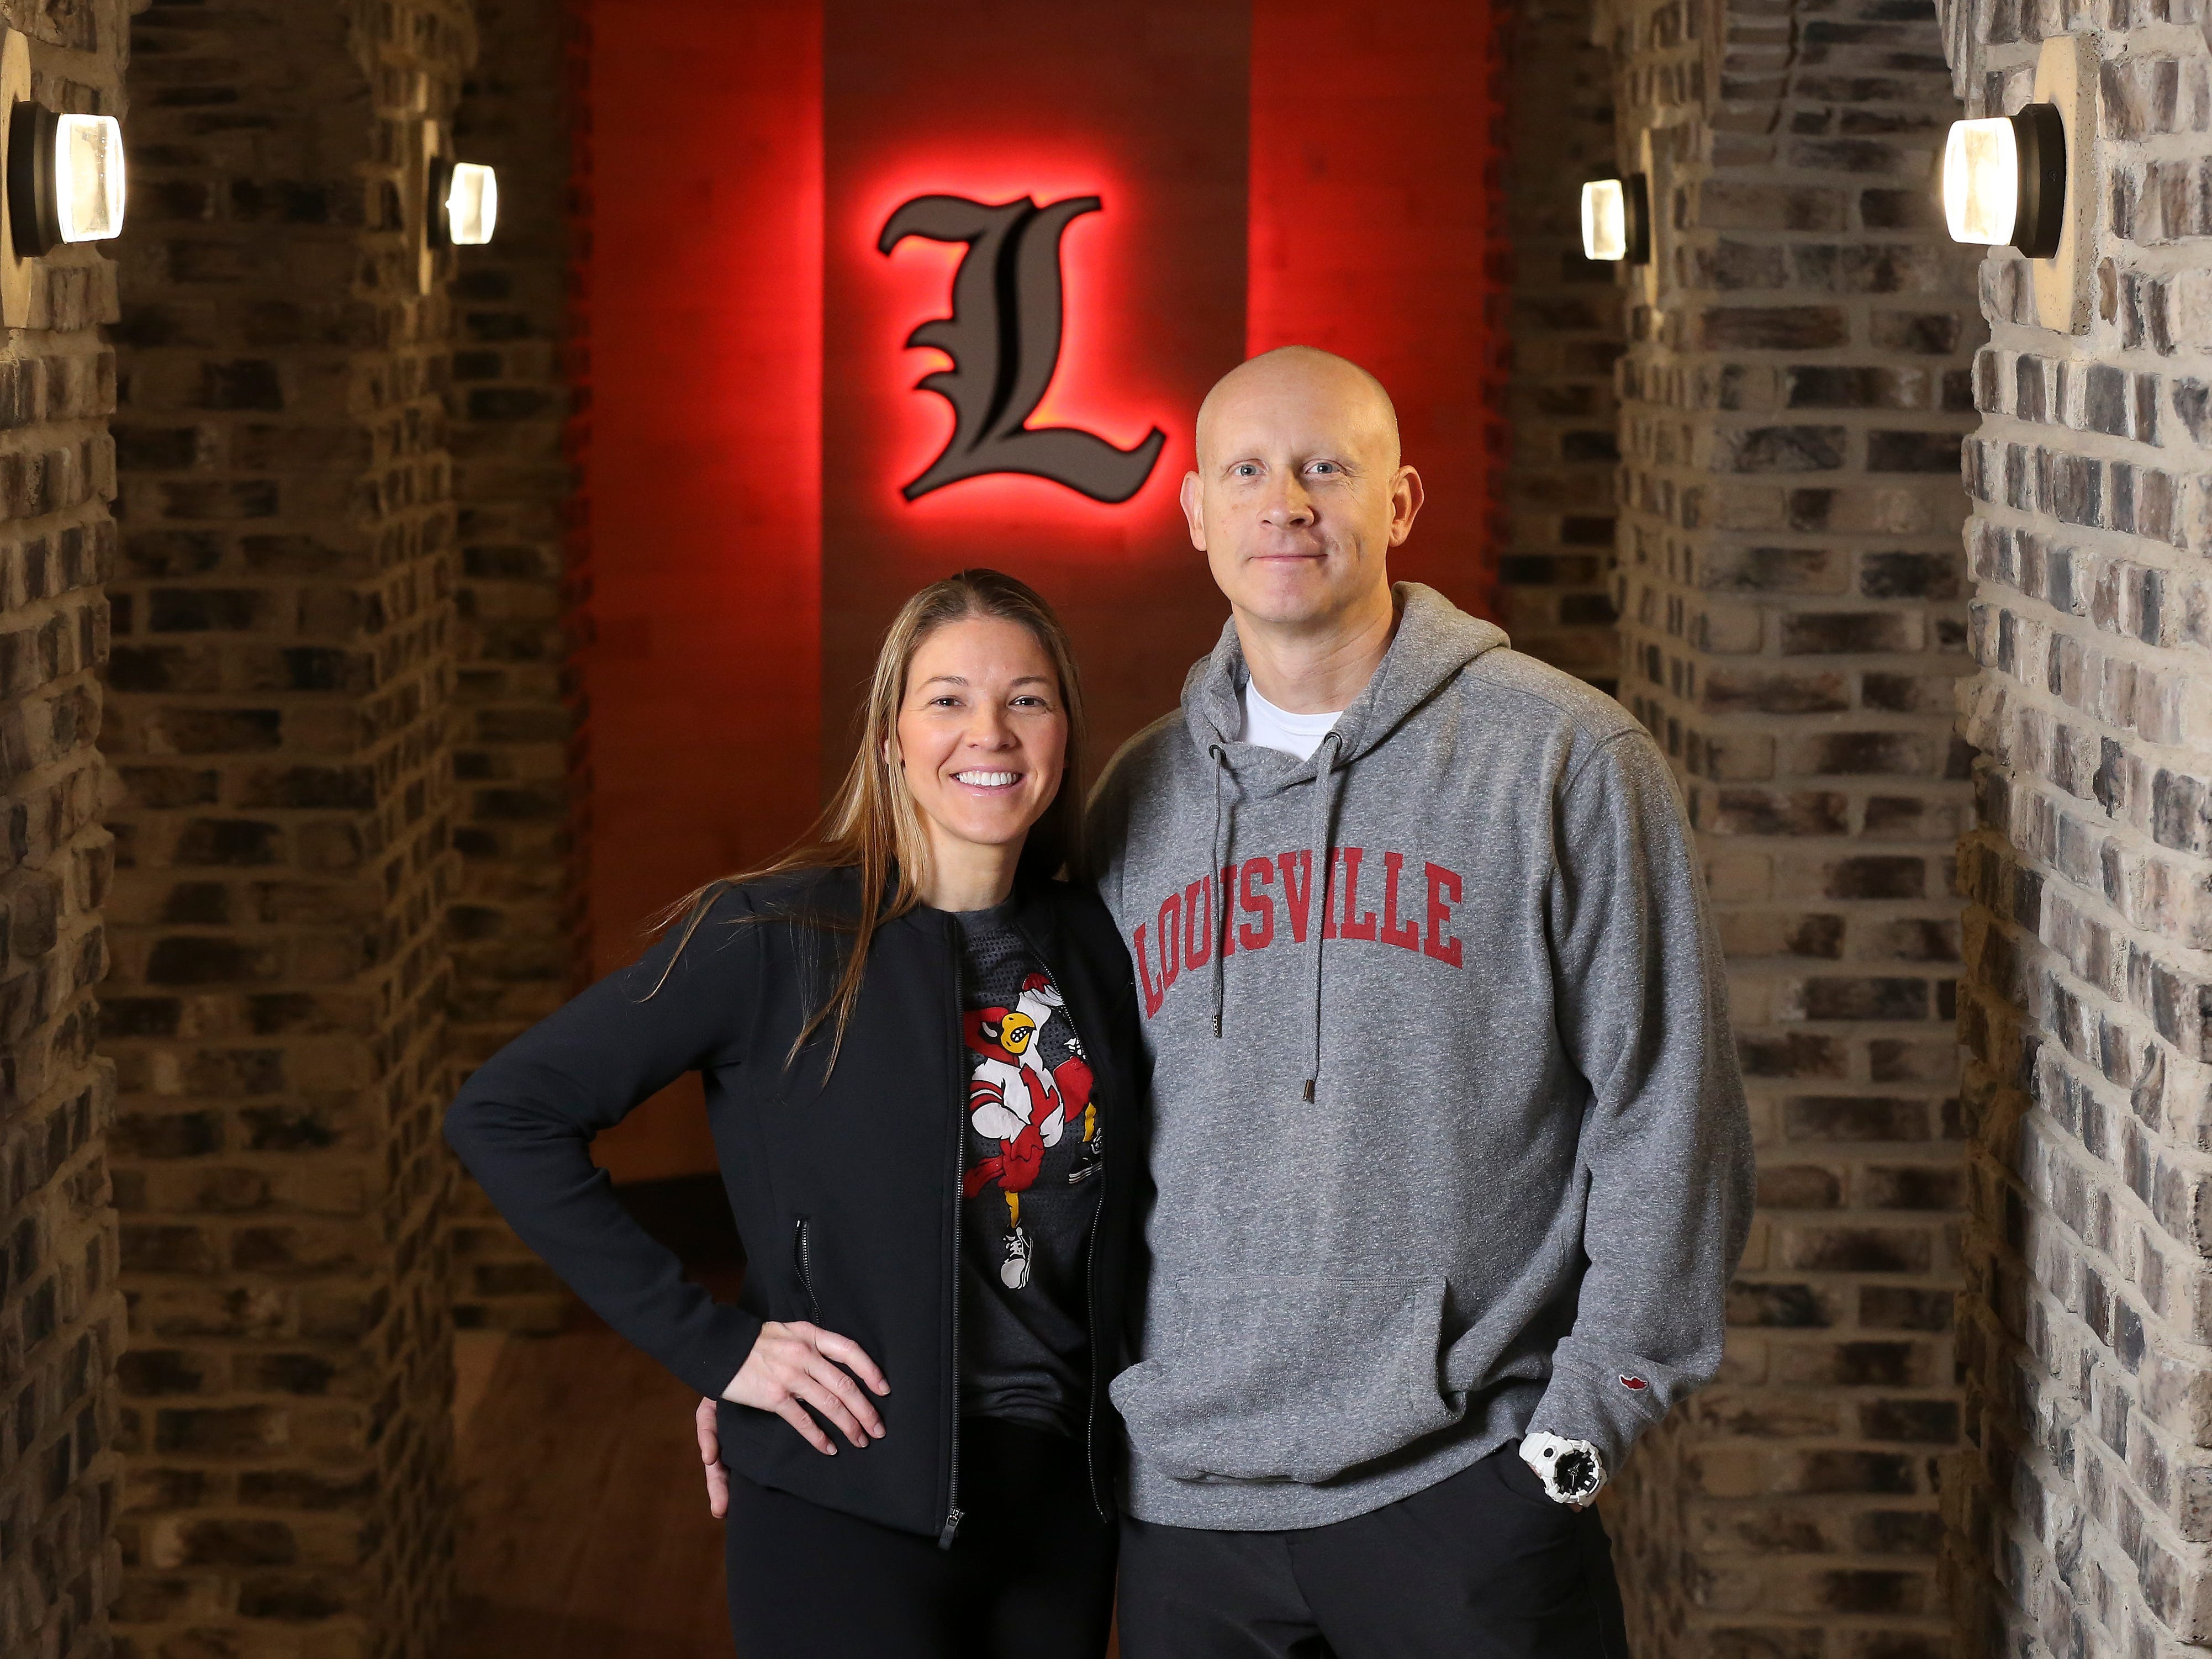 Louisville basketball coach Chris Mack, right, and his wife Christi Mack stood in the corridor leading to the entertainment area in the basement of their home.